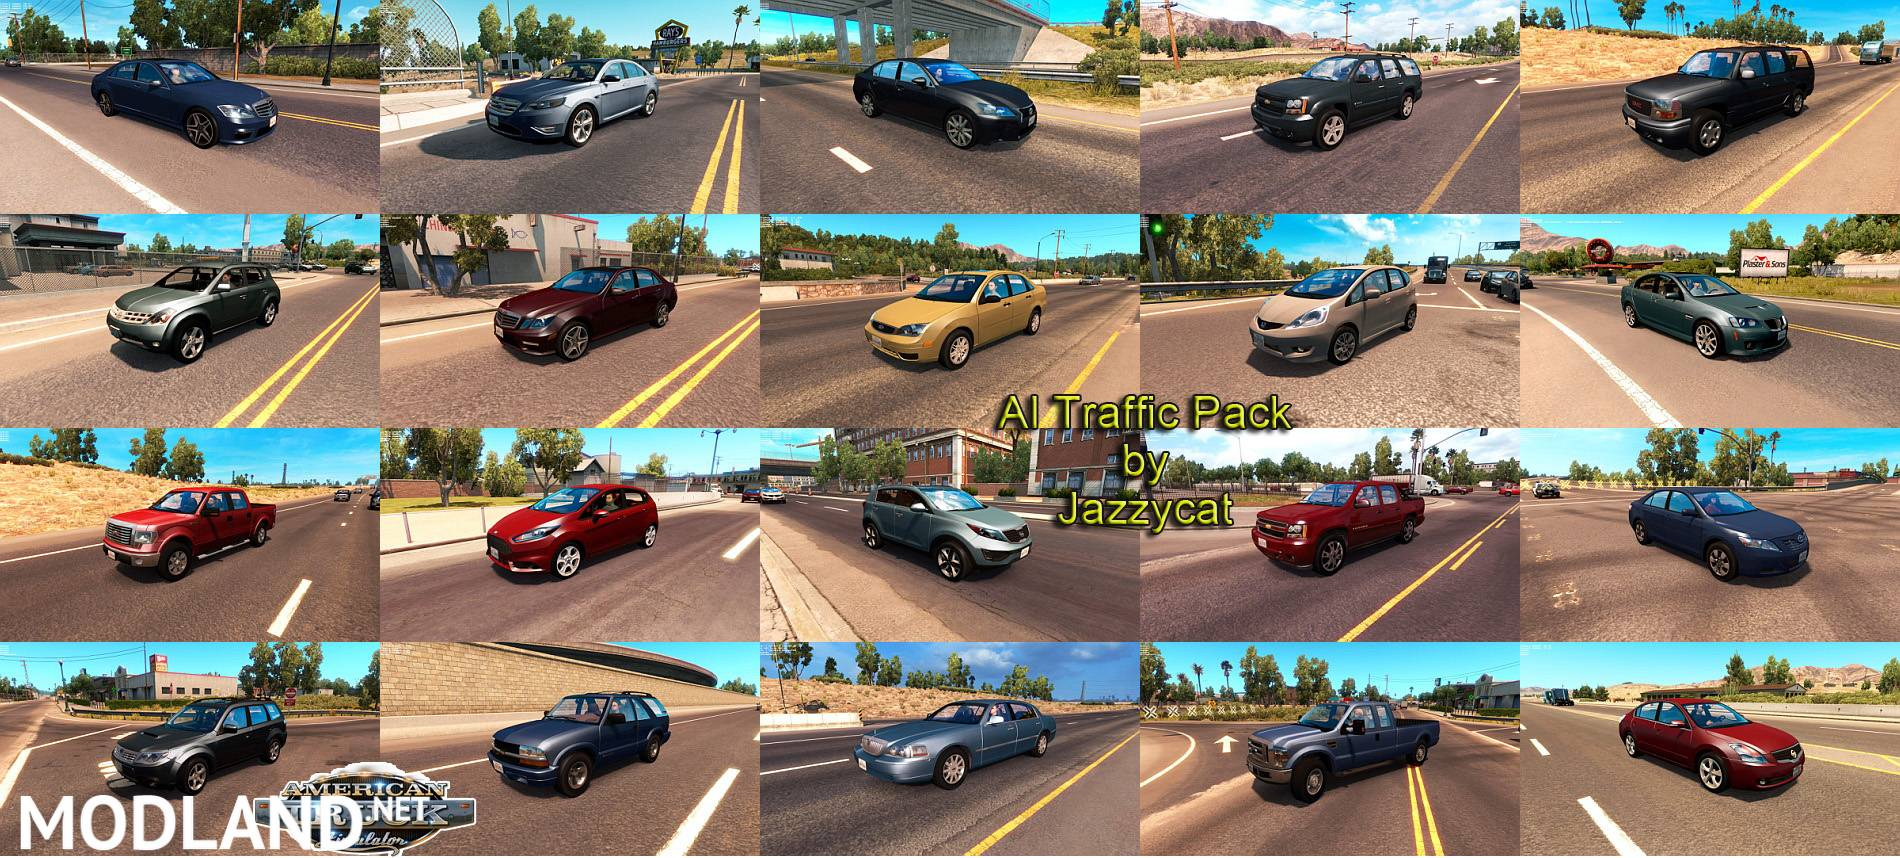 AI Traffic Pack by Jazzycat v1 7 mod for American Truck